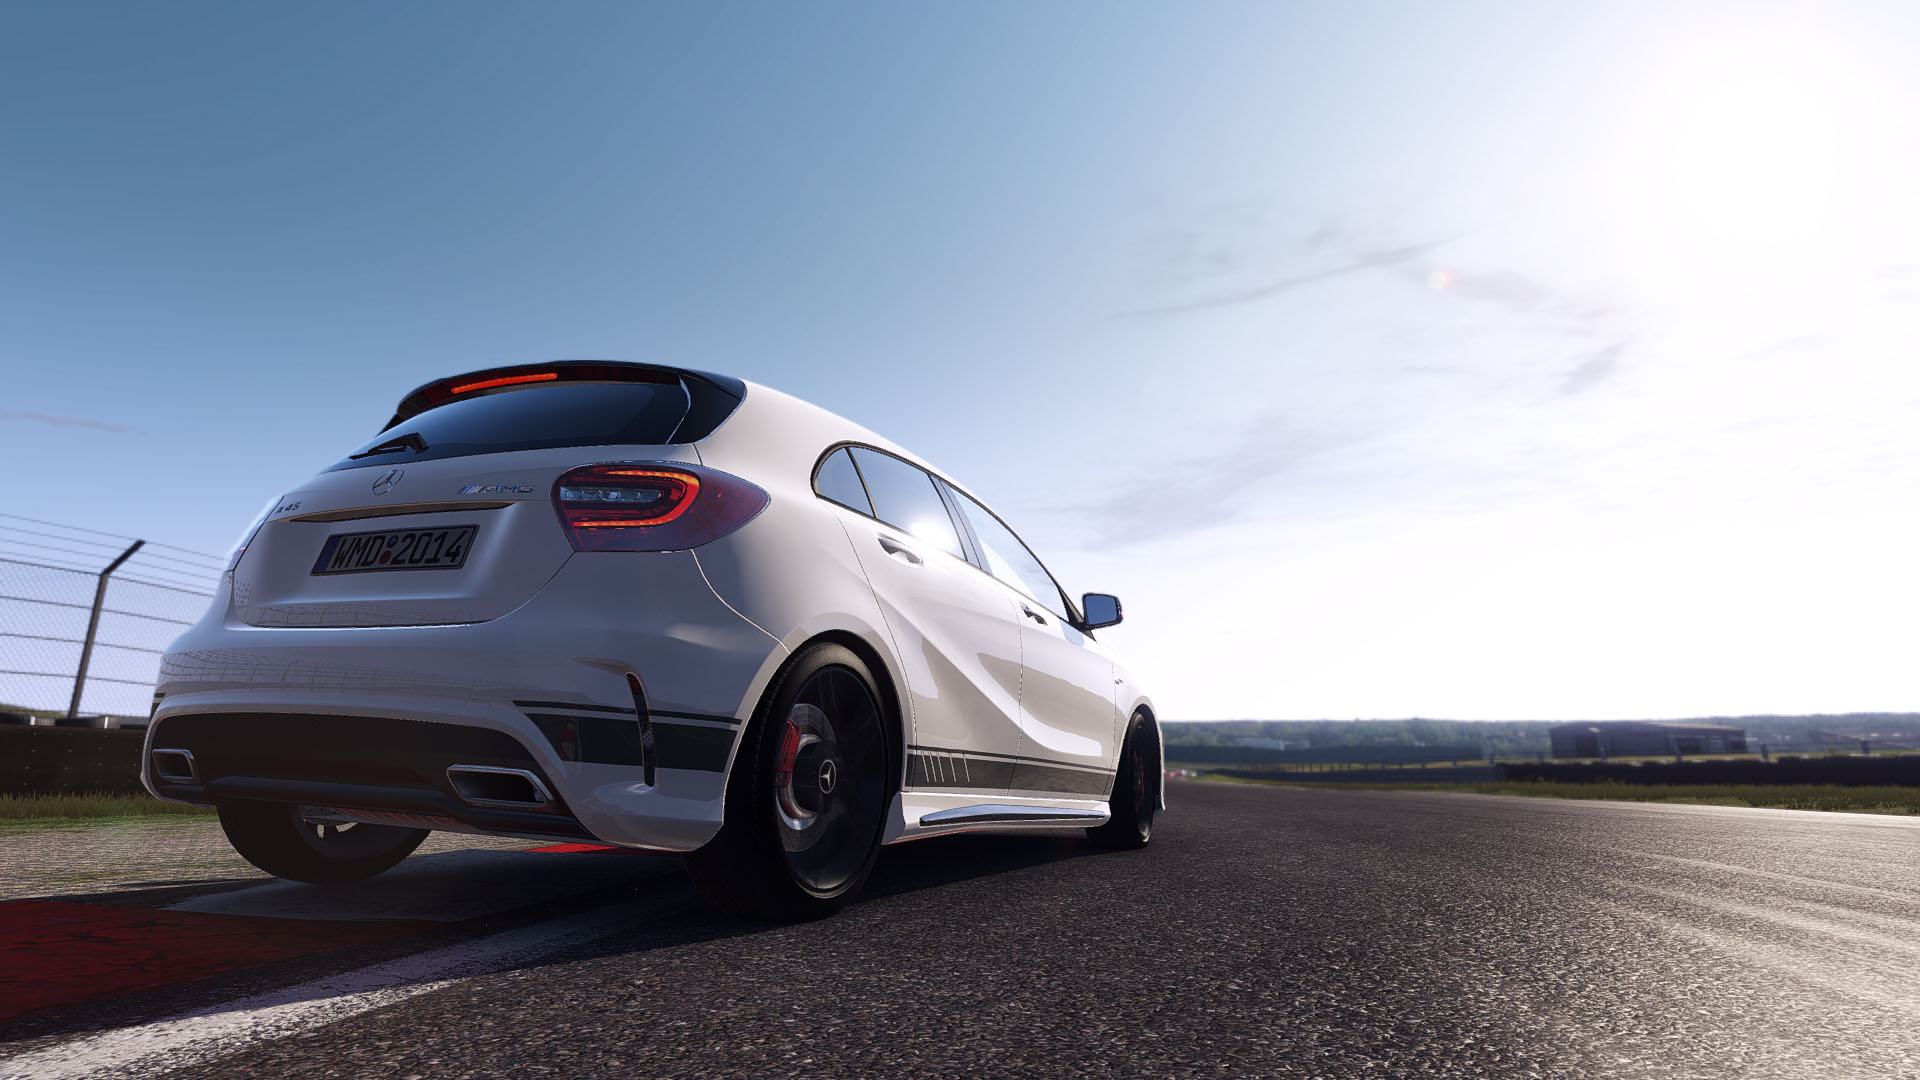 New Project Cars Screens Shows Few Cars, Graphics And Car